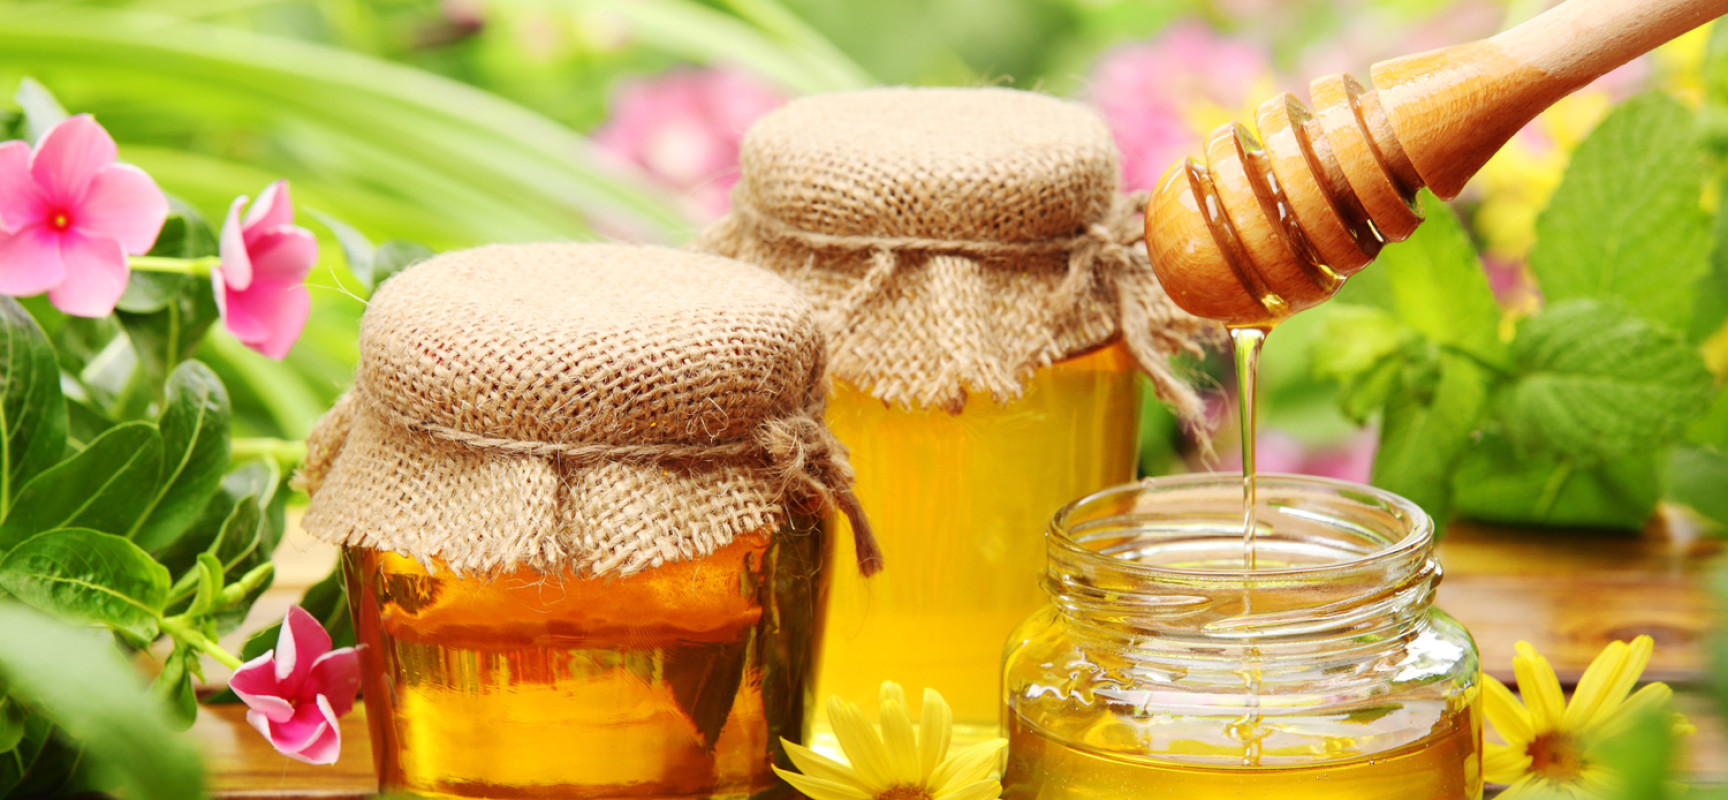 Fun facts about honey – the wonders it can do!